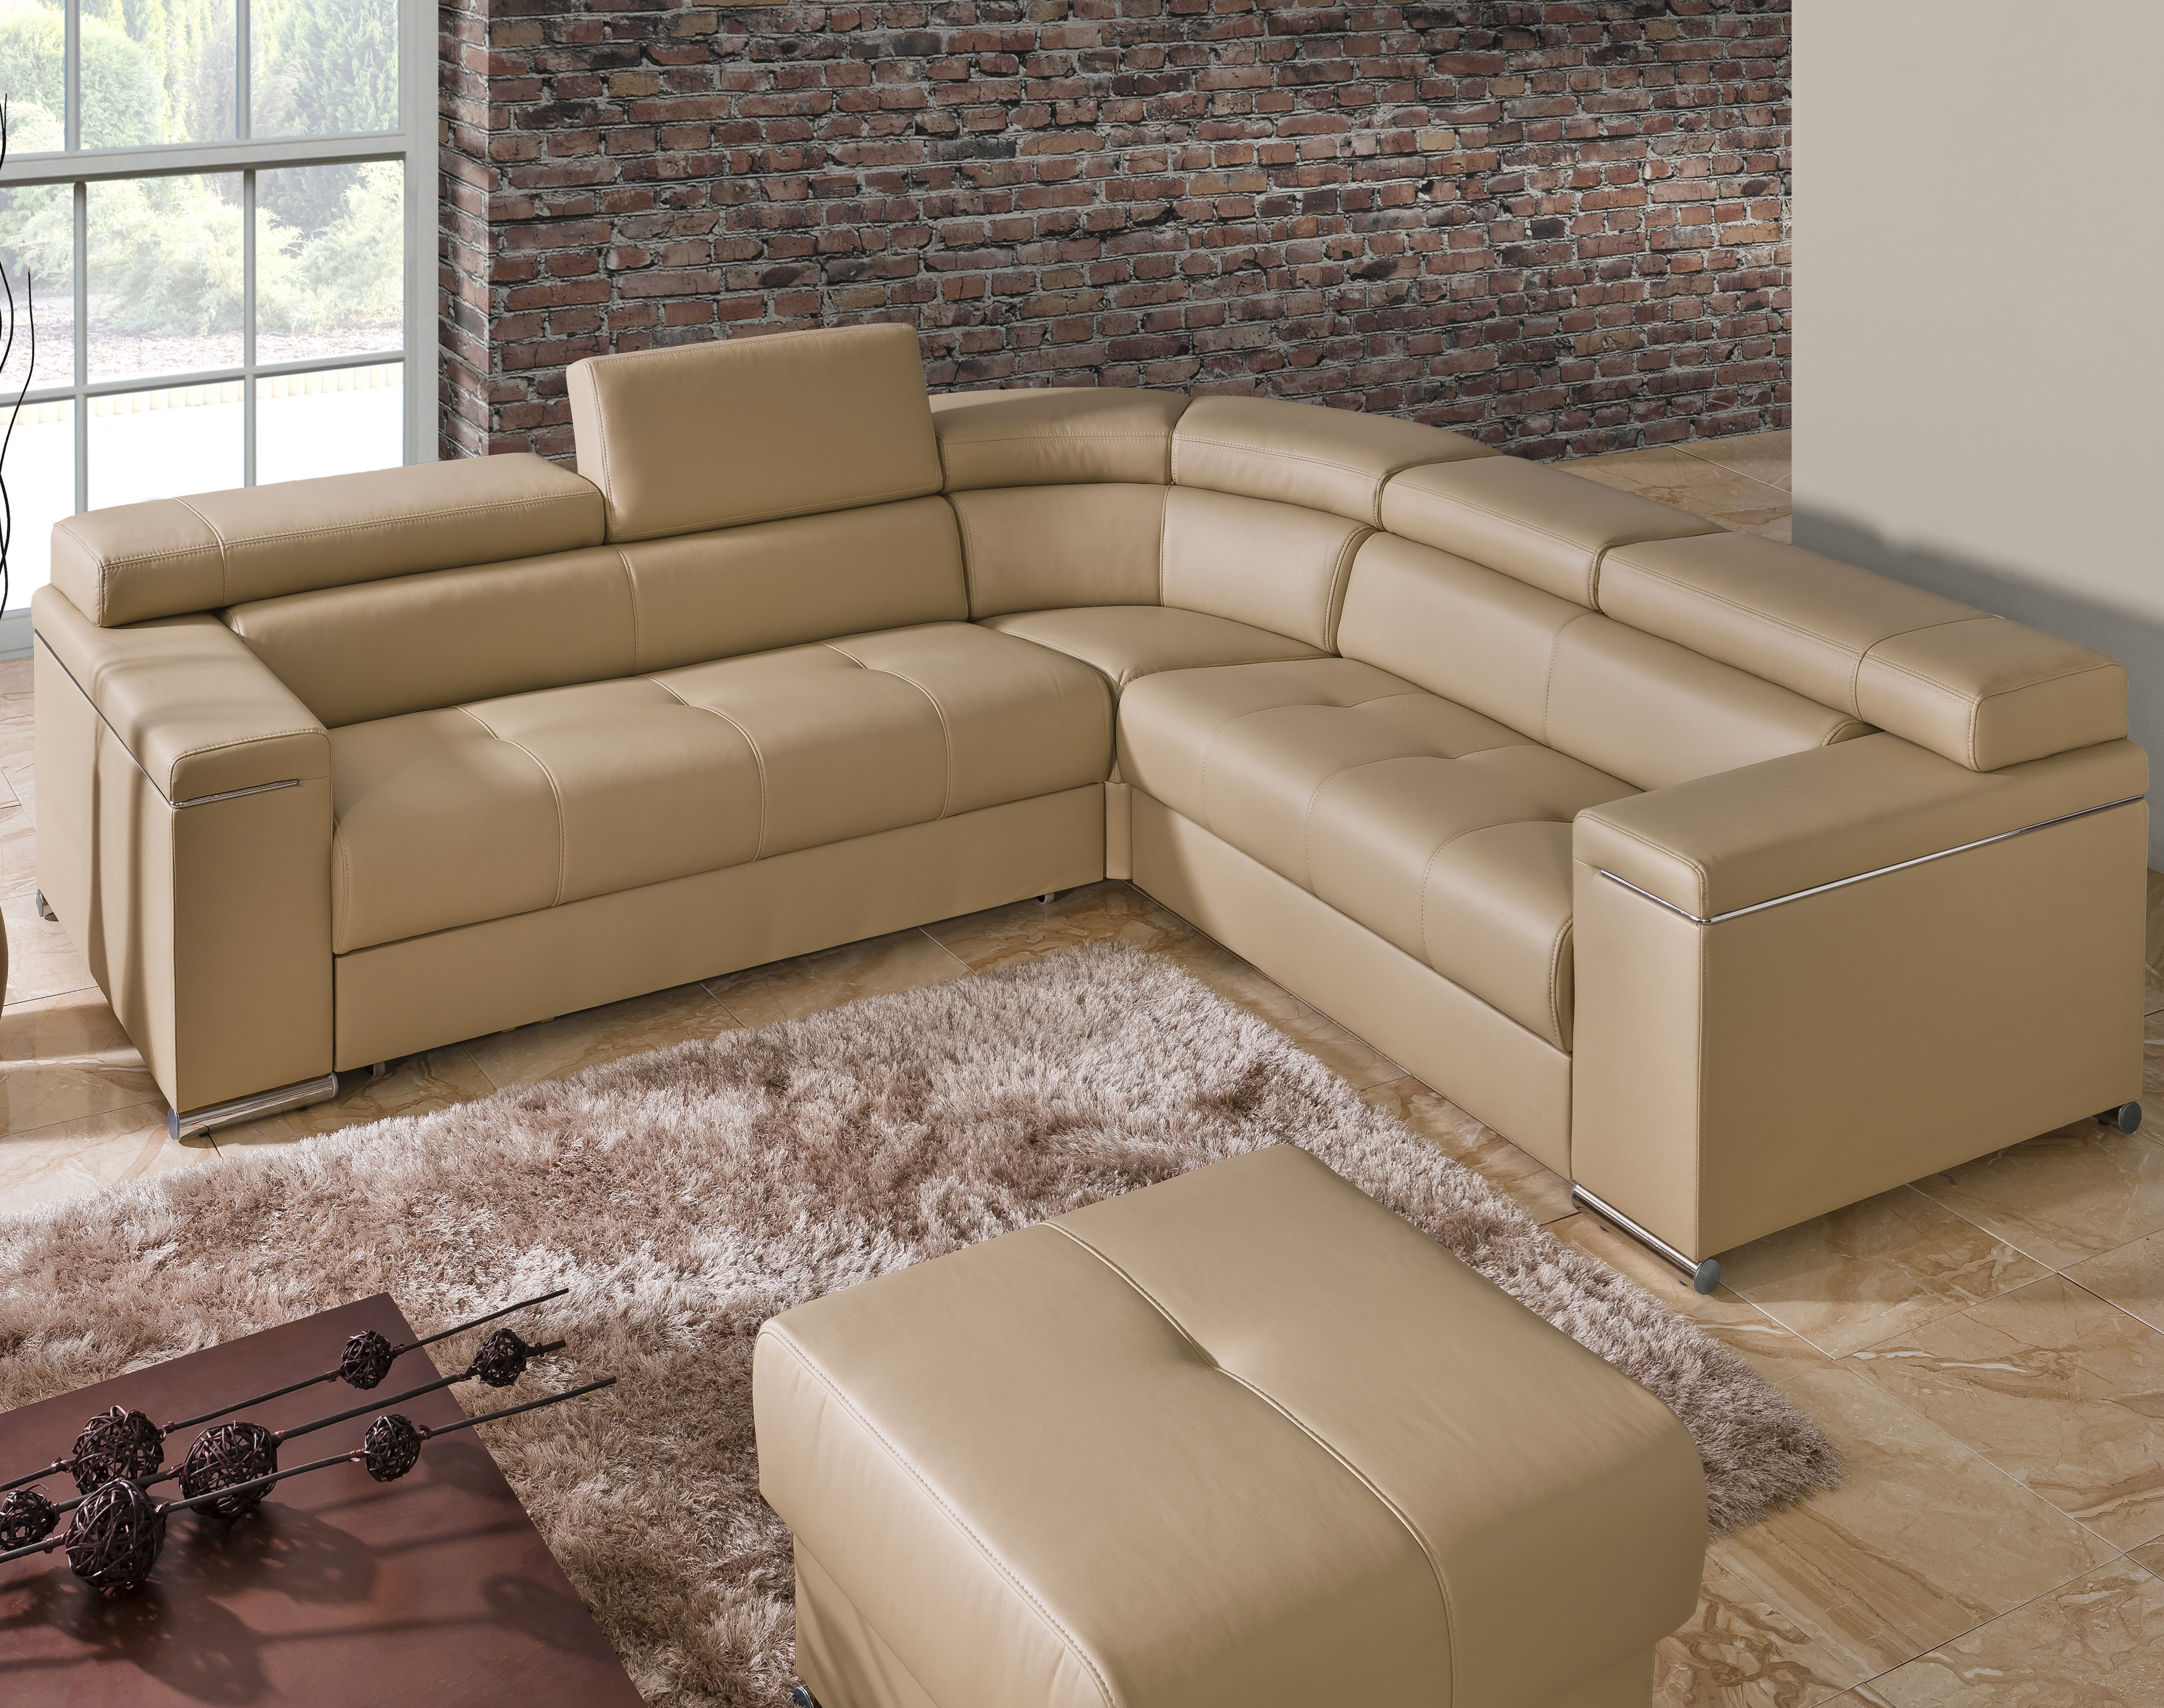 The Collection German Furniture Sleeper Sectional | Wayfair within Blaine 3 Piece Sectionals (Image 29 of 30)